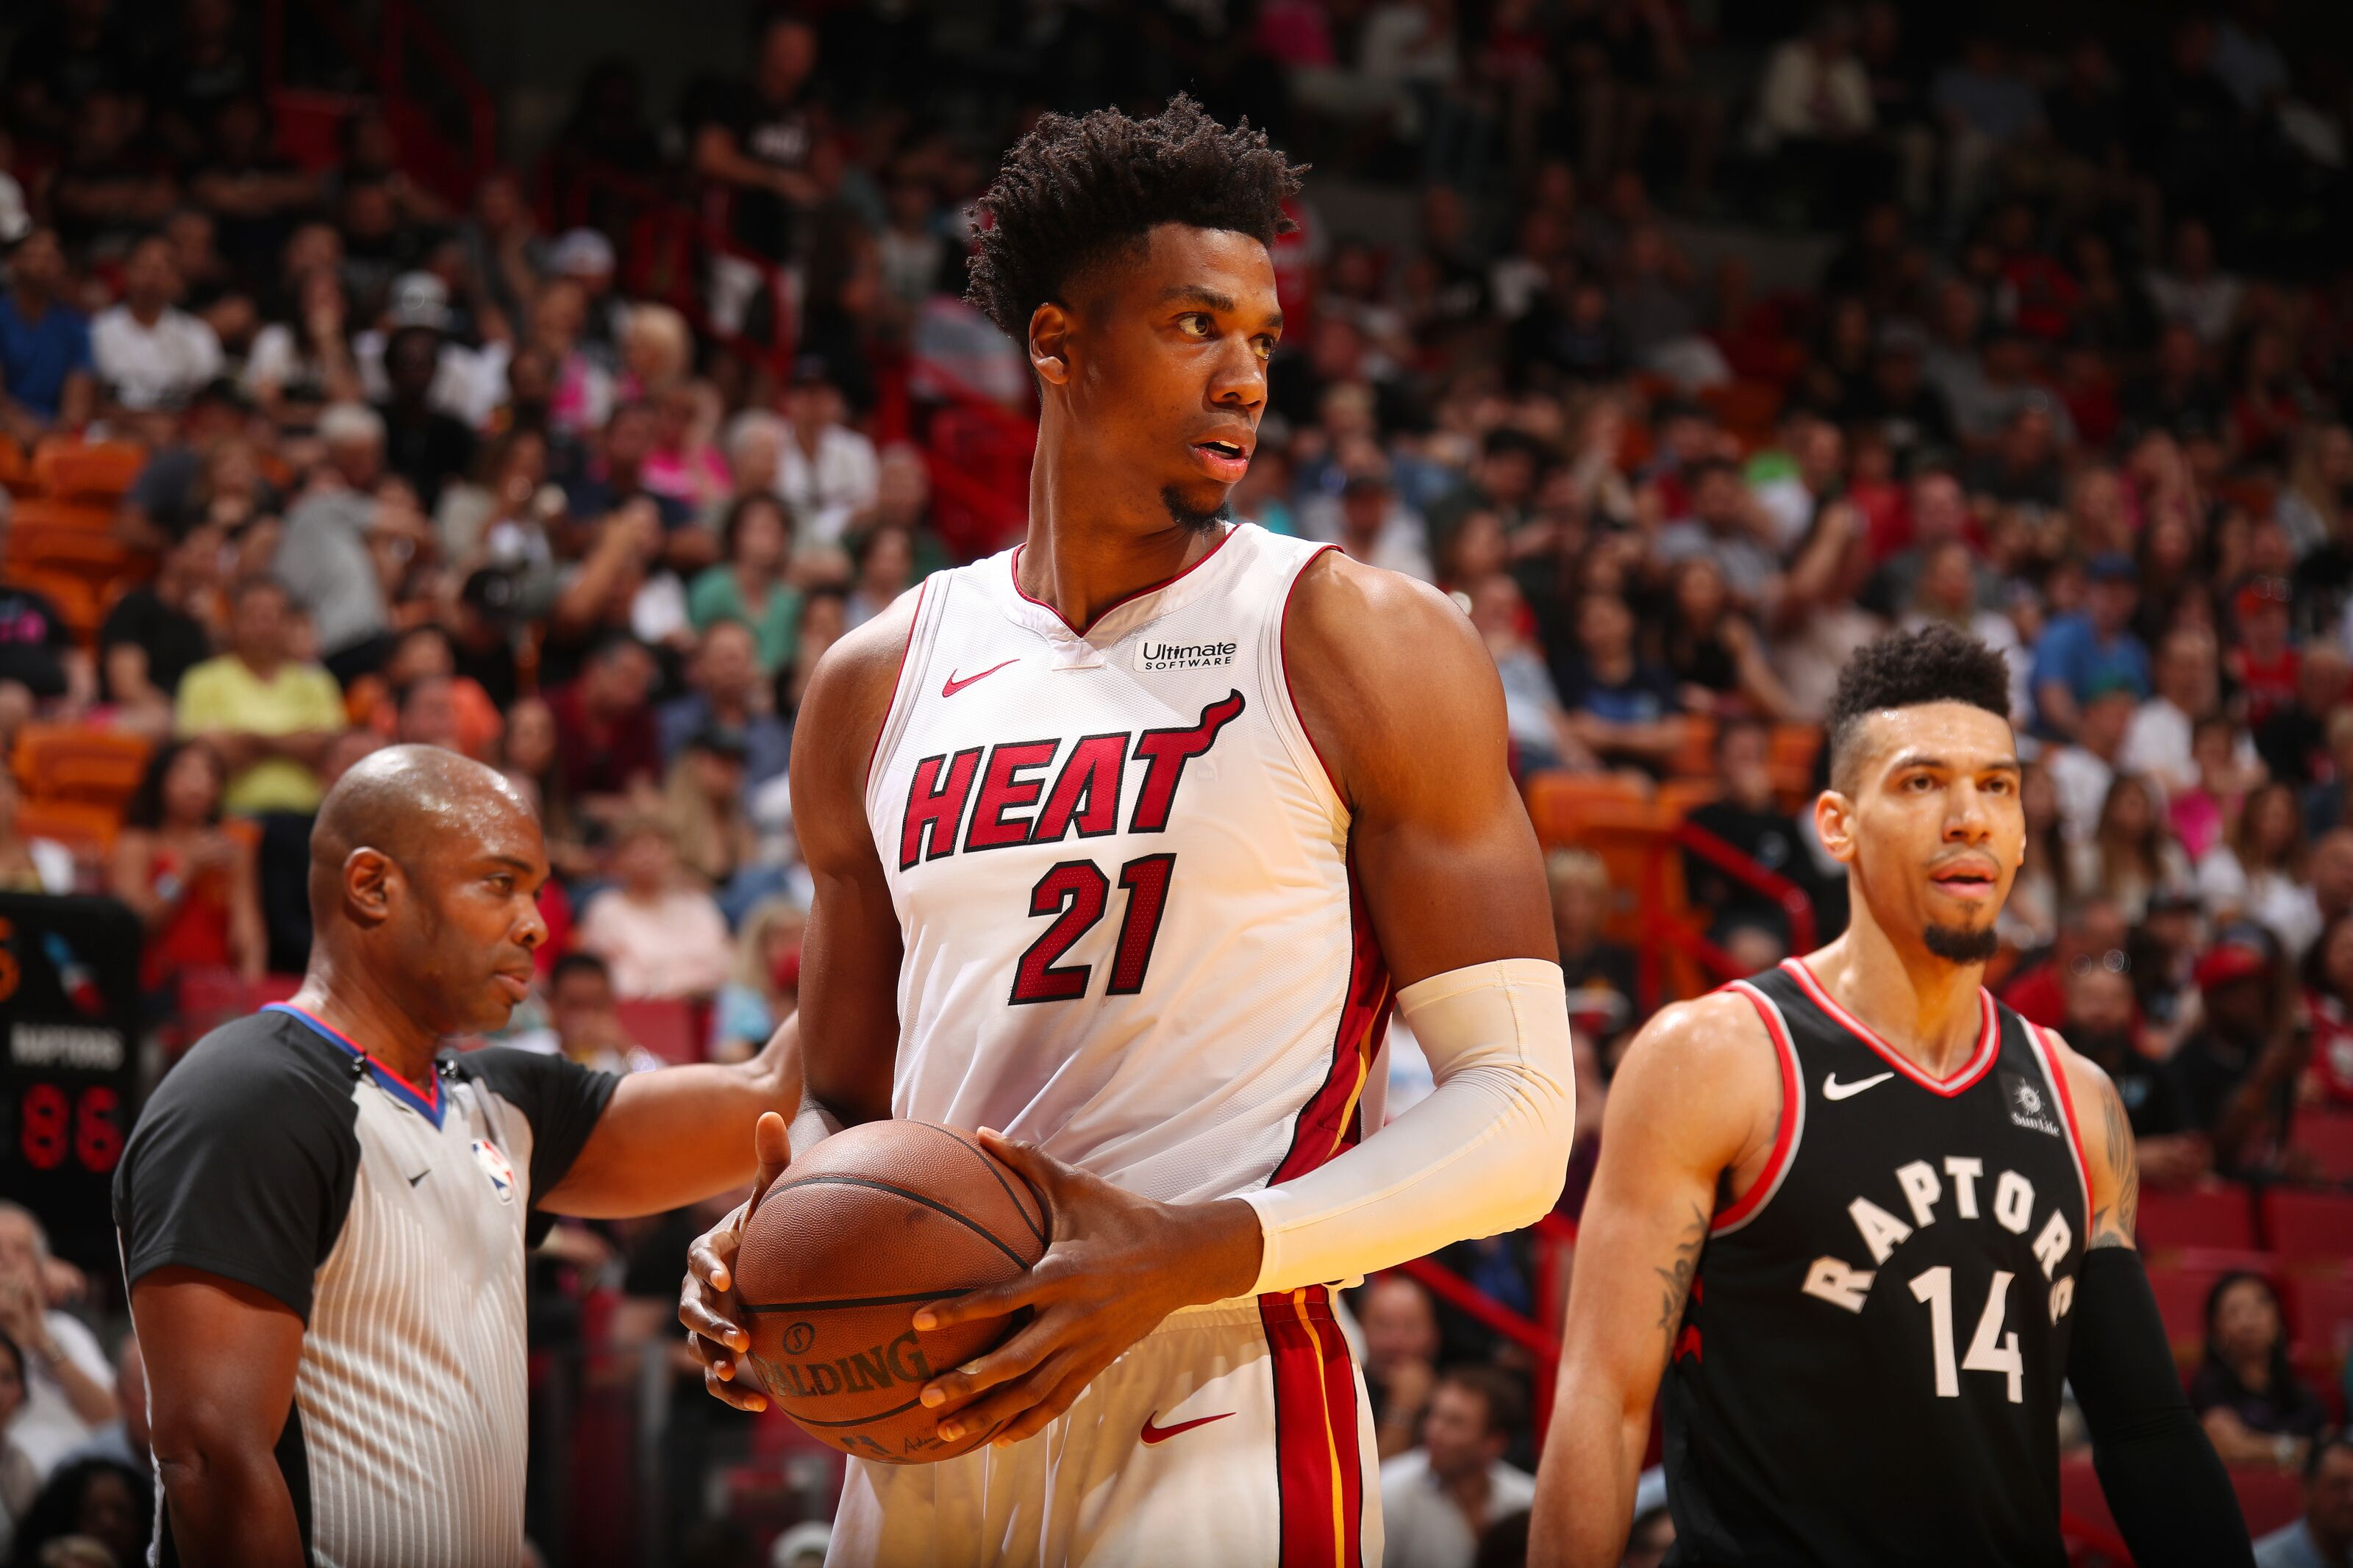 Miami Heat: Hassan Whiteside flourishing so far in bench role